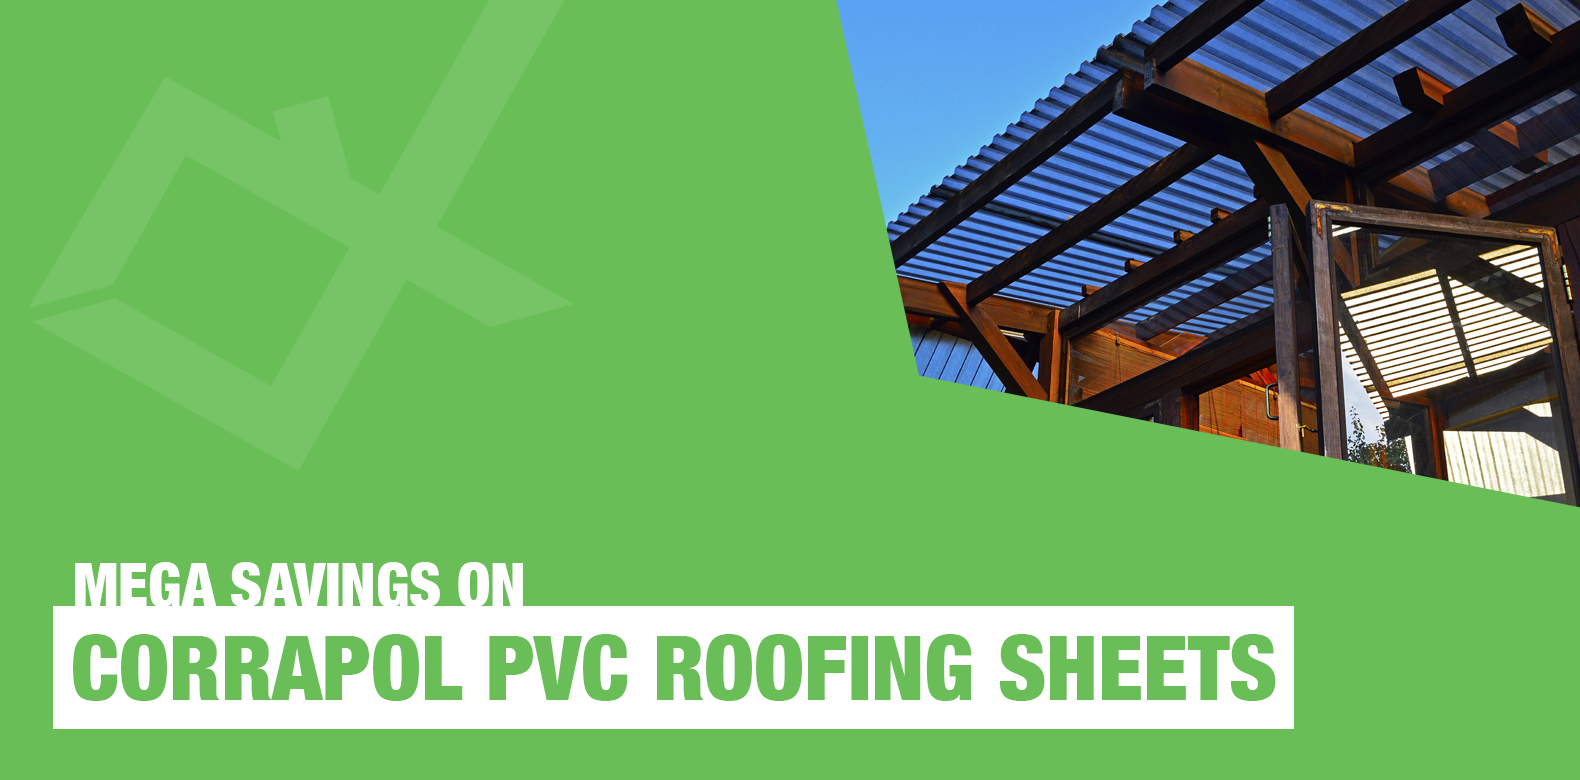 10% Off Plastic Roofing Sheets This September